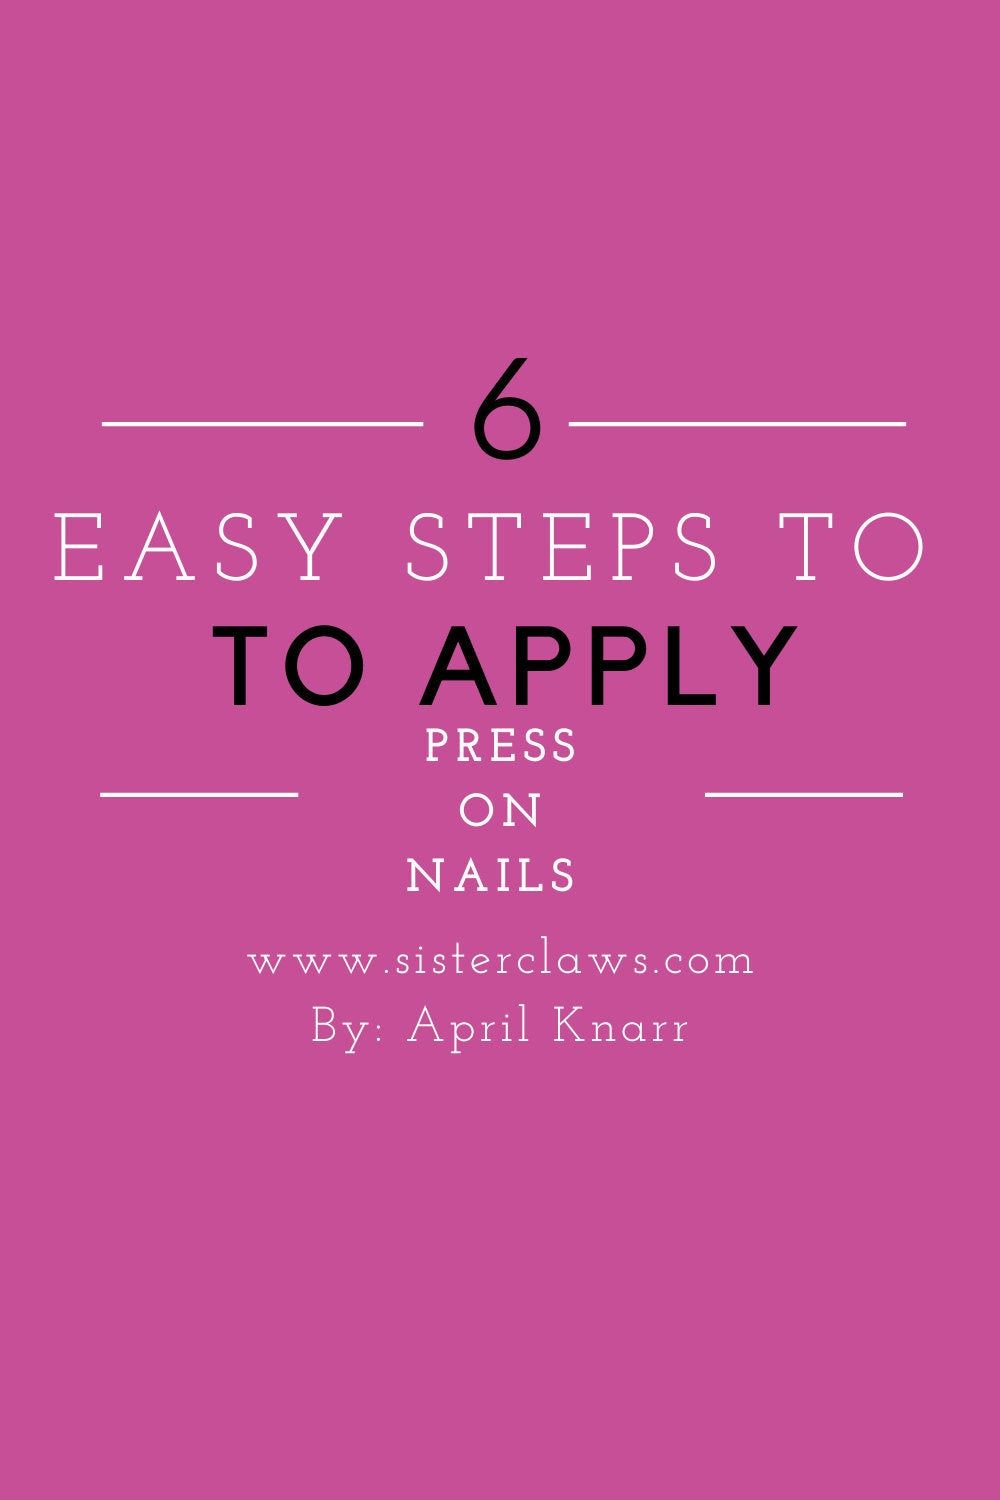 how to apply press on nails instructions